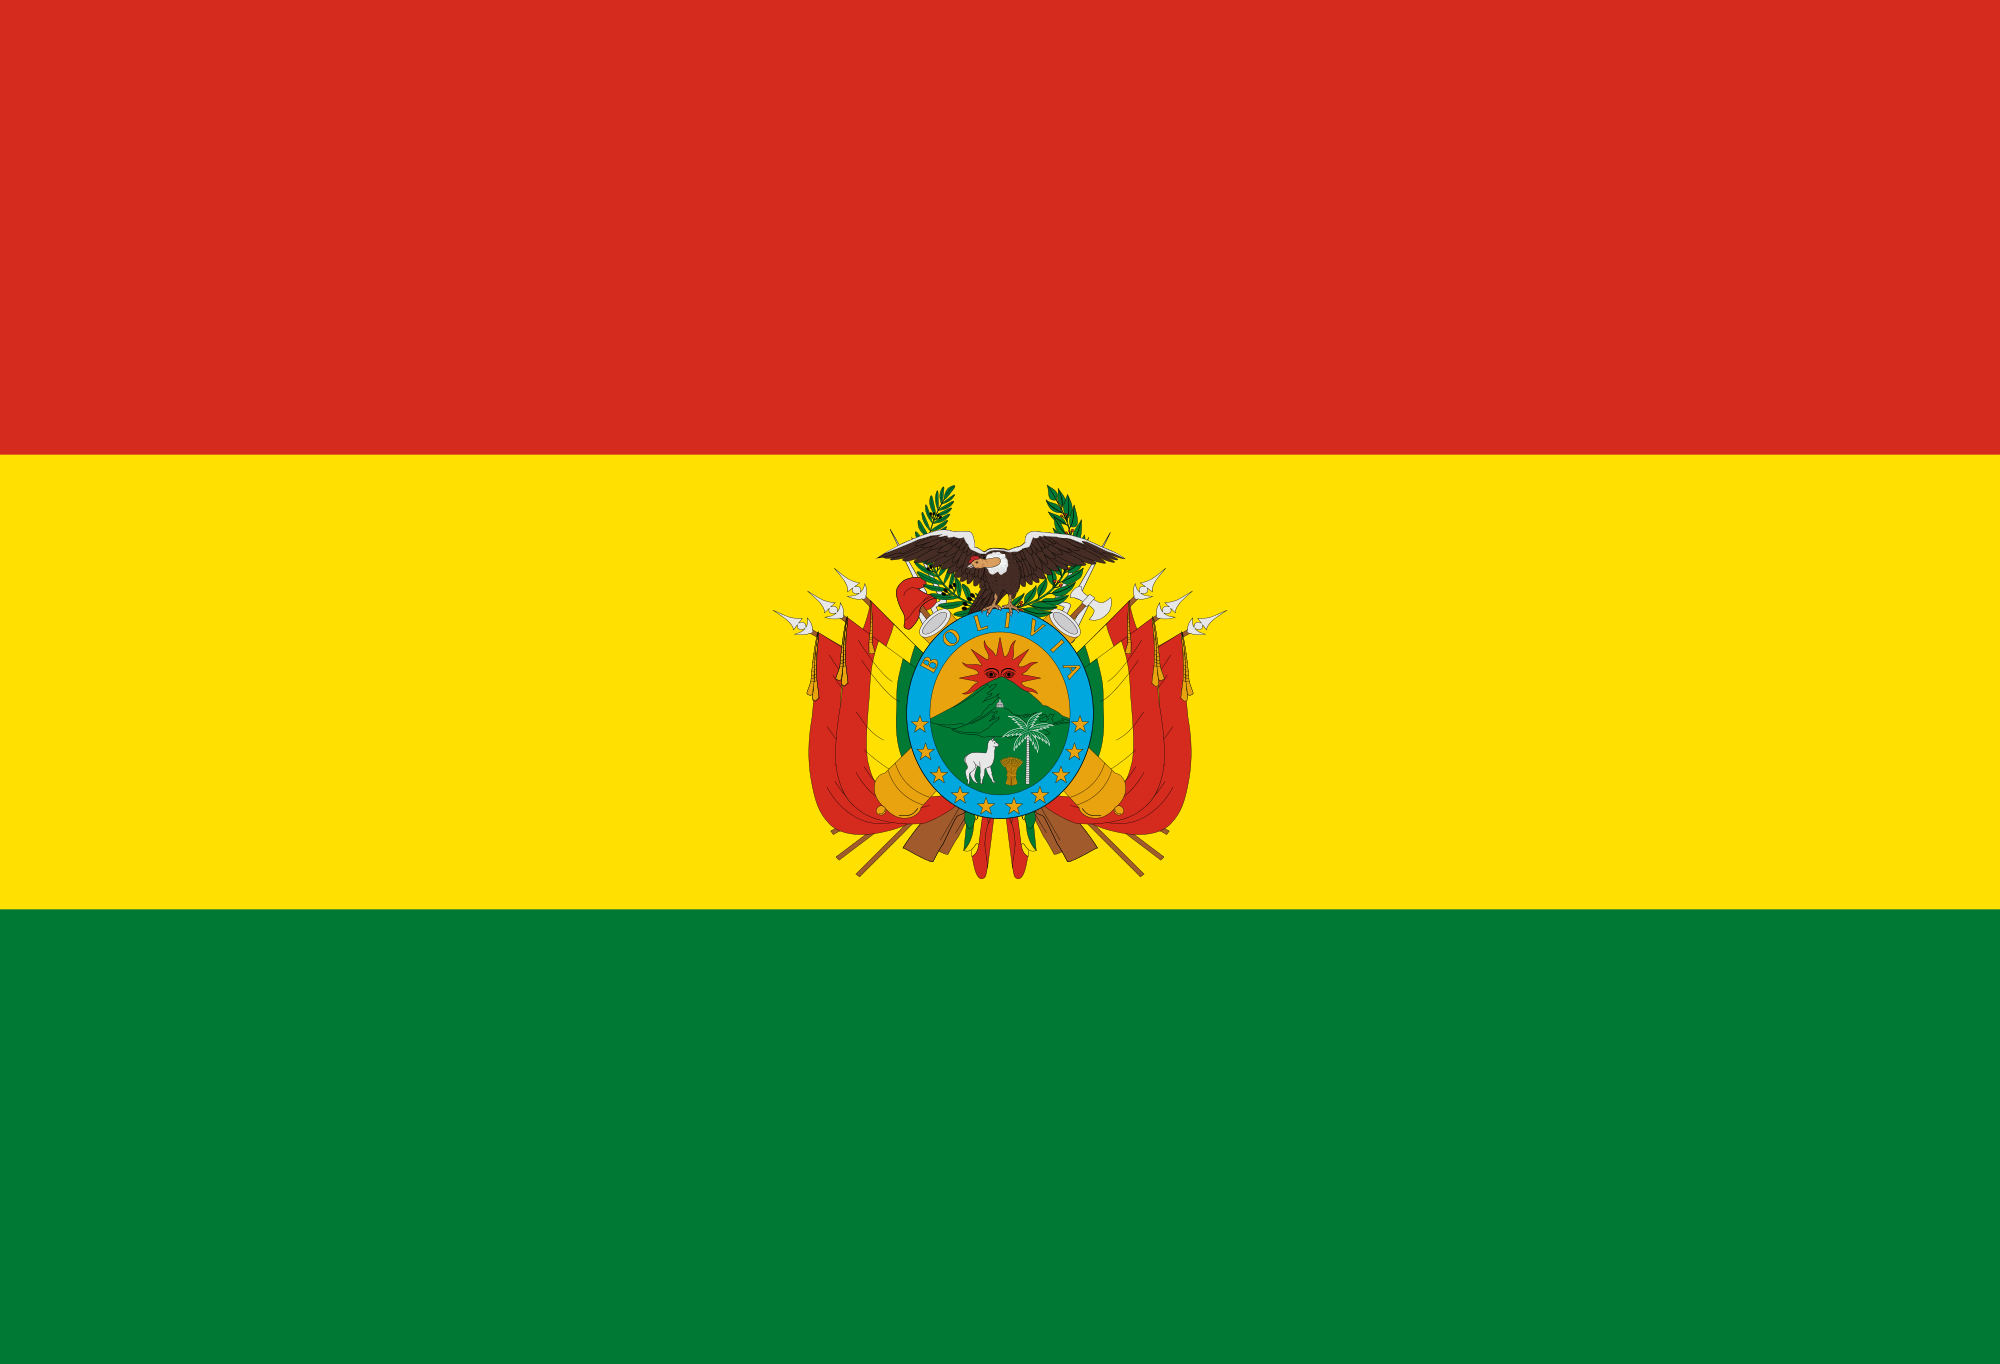 Flag Of Bolivia Png - The Amazing Meaning Behind the Bolivian National Flag